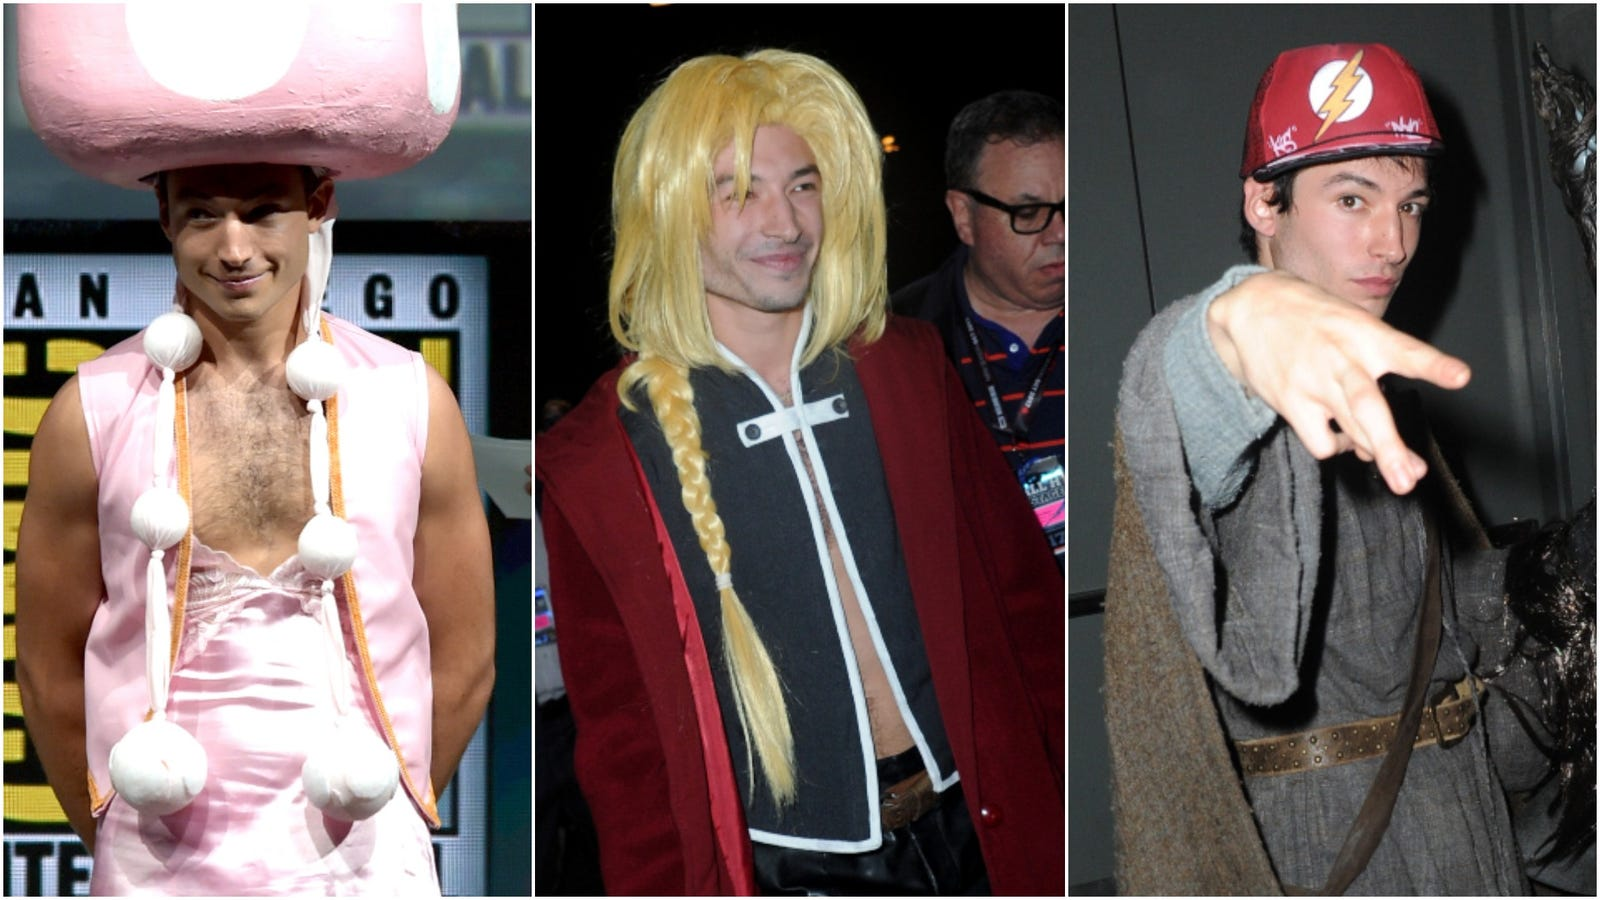 And now, an appreciation of Ezra Miller cosplaying at Comic-Con